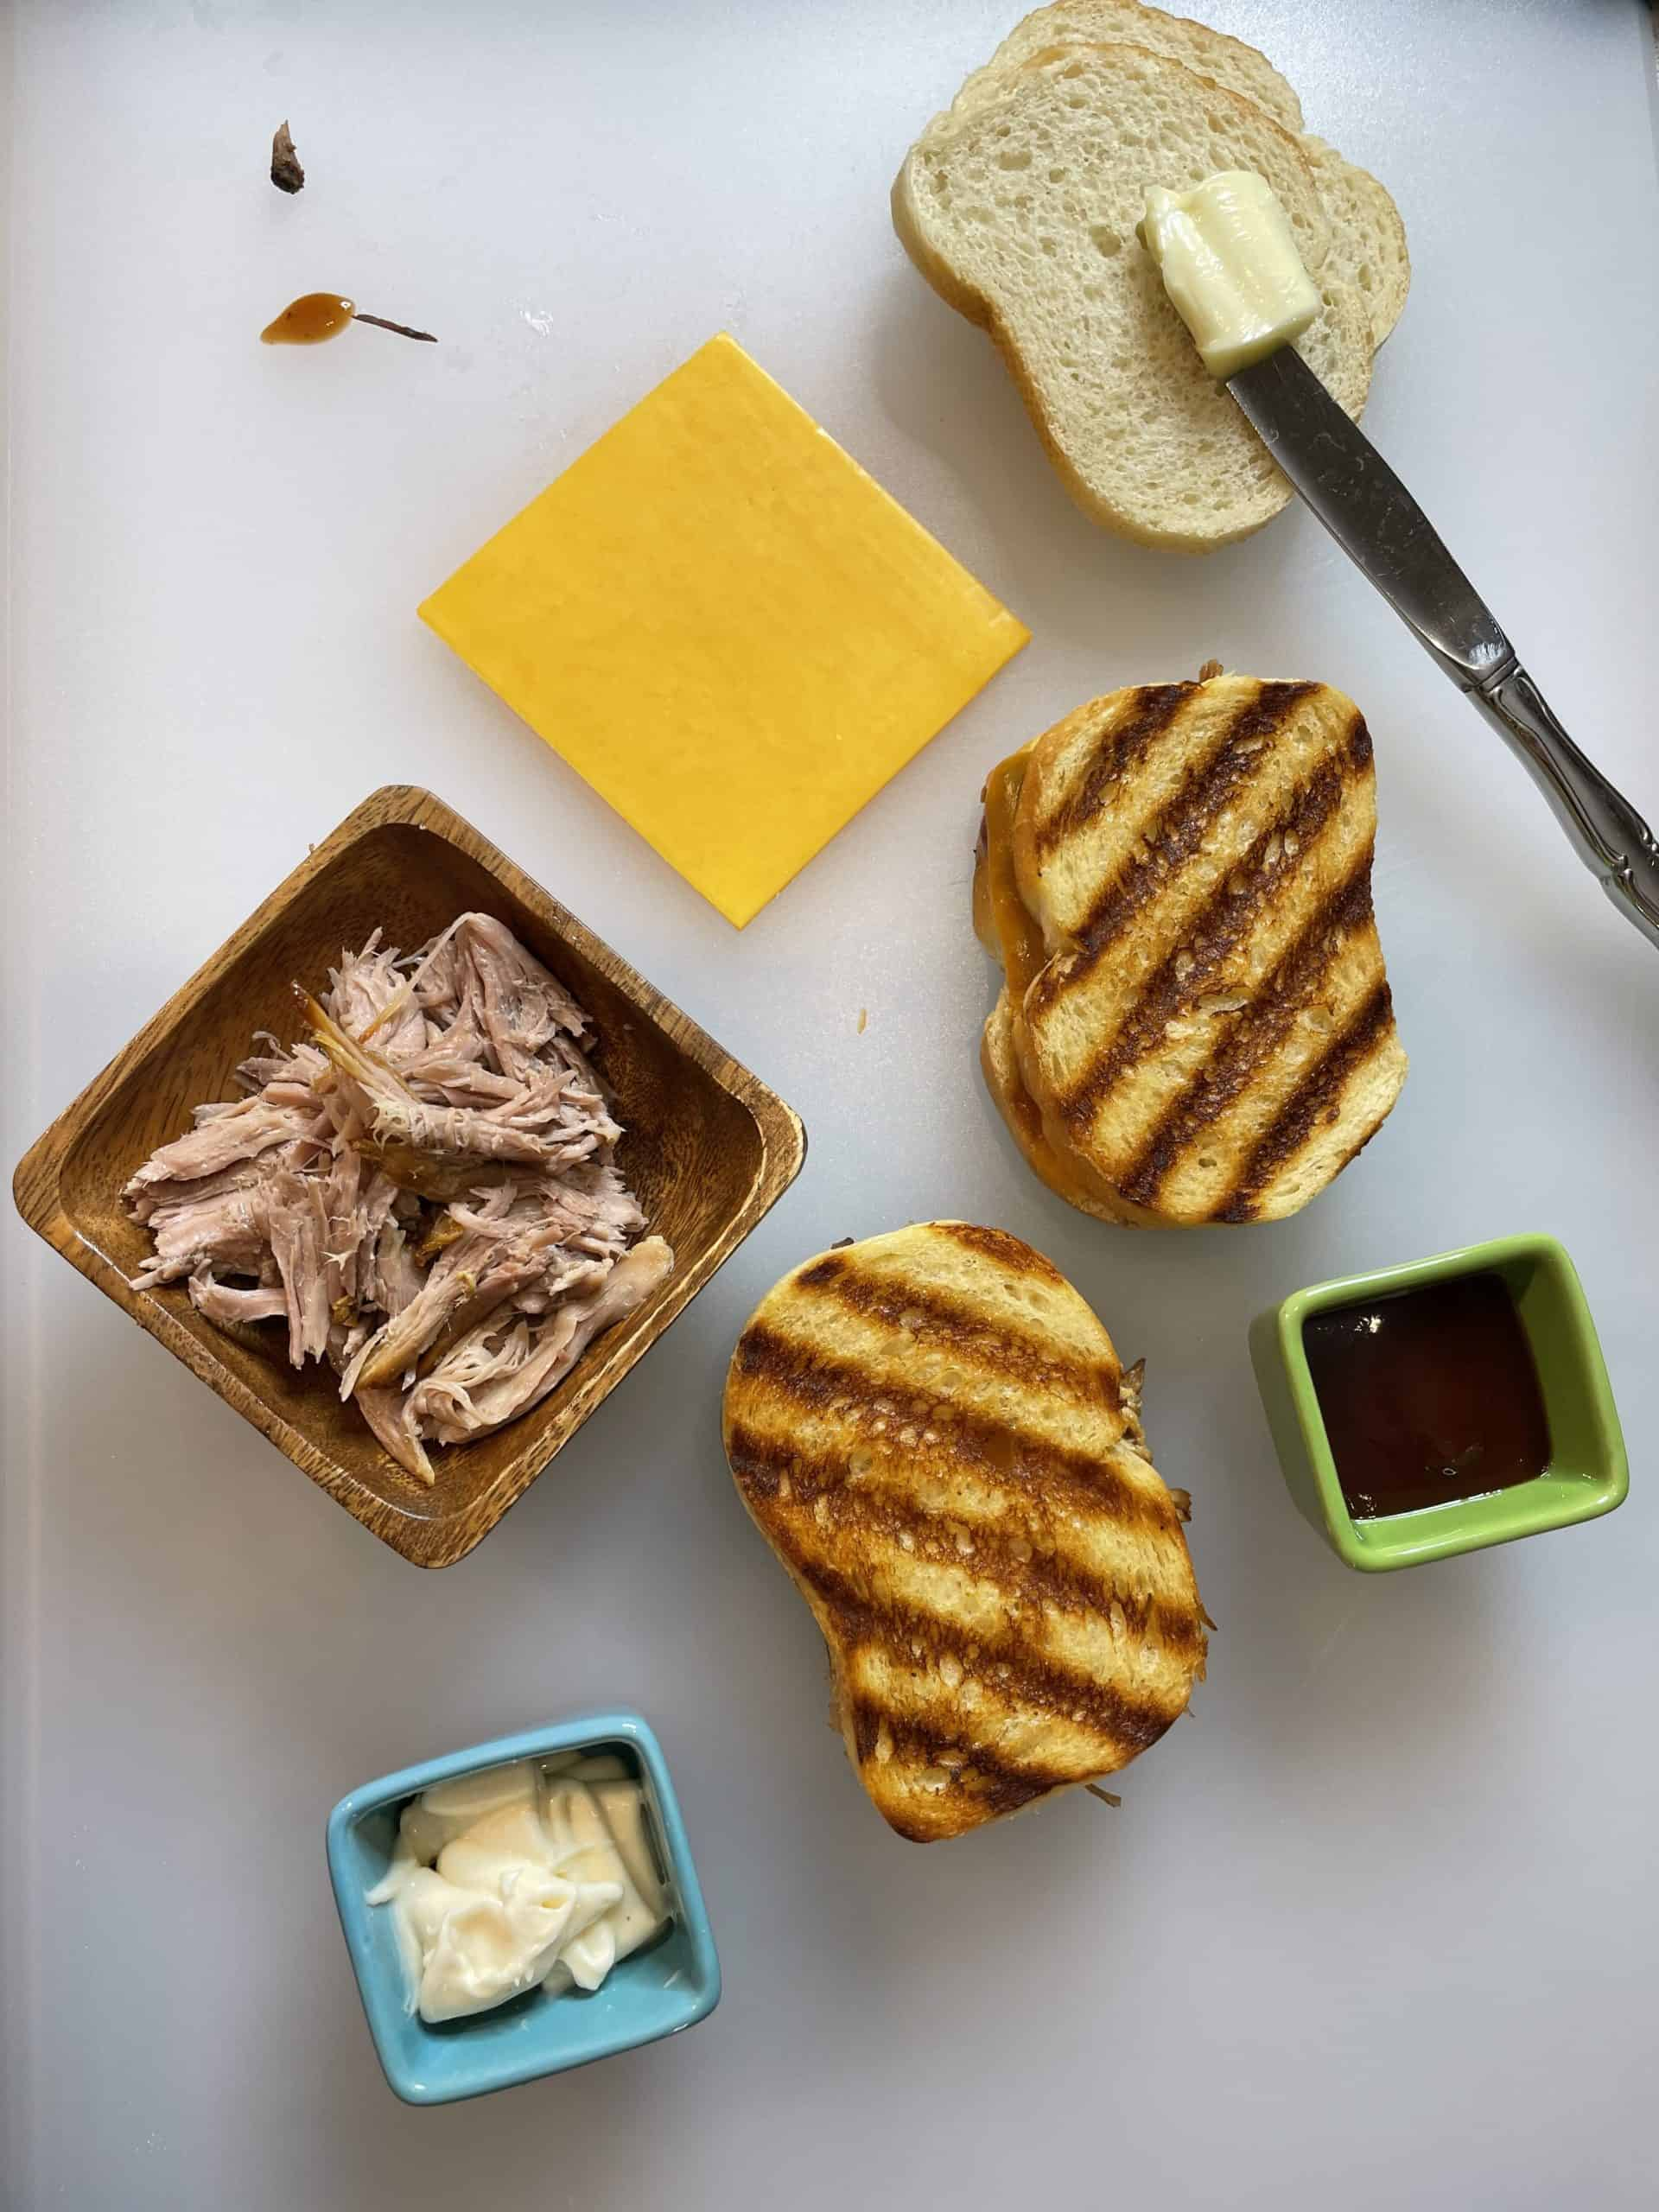 Pulled Pork Grilled Cheese Sandwich Ingredients